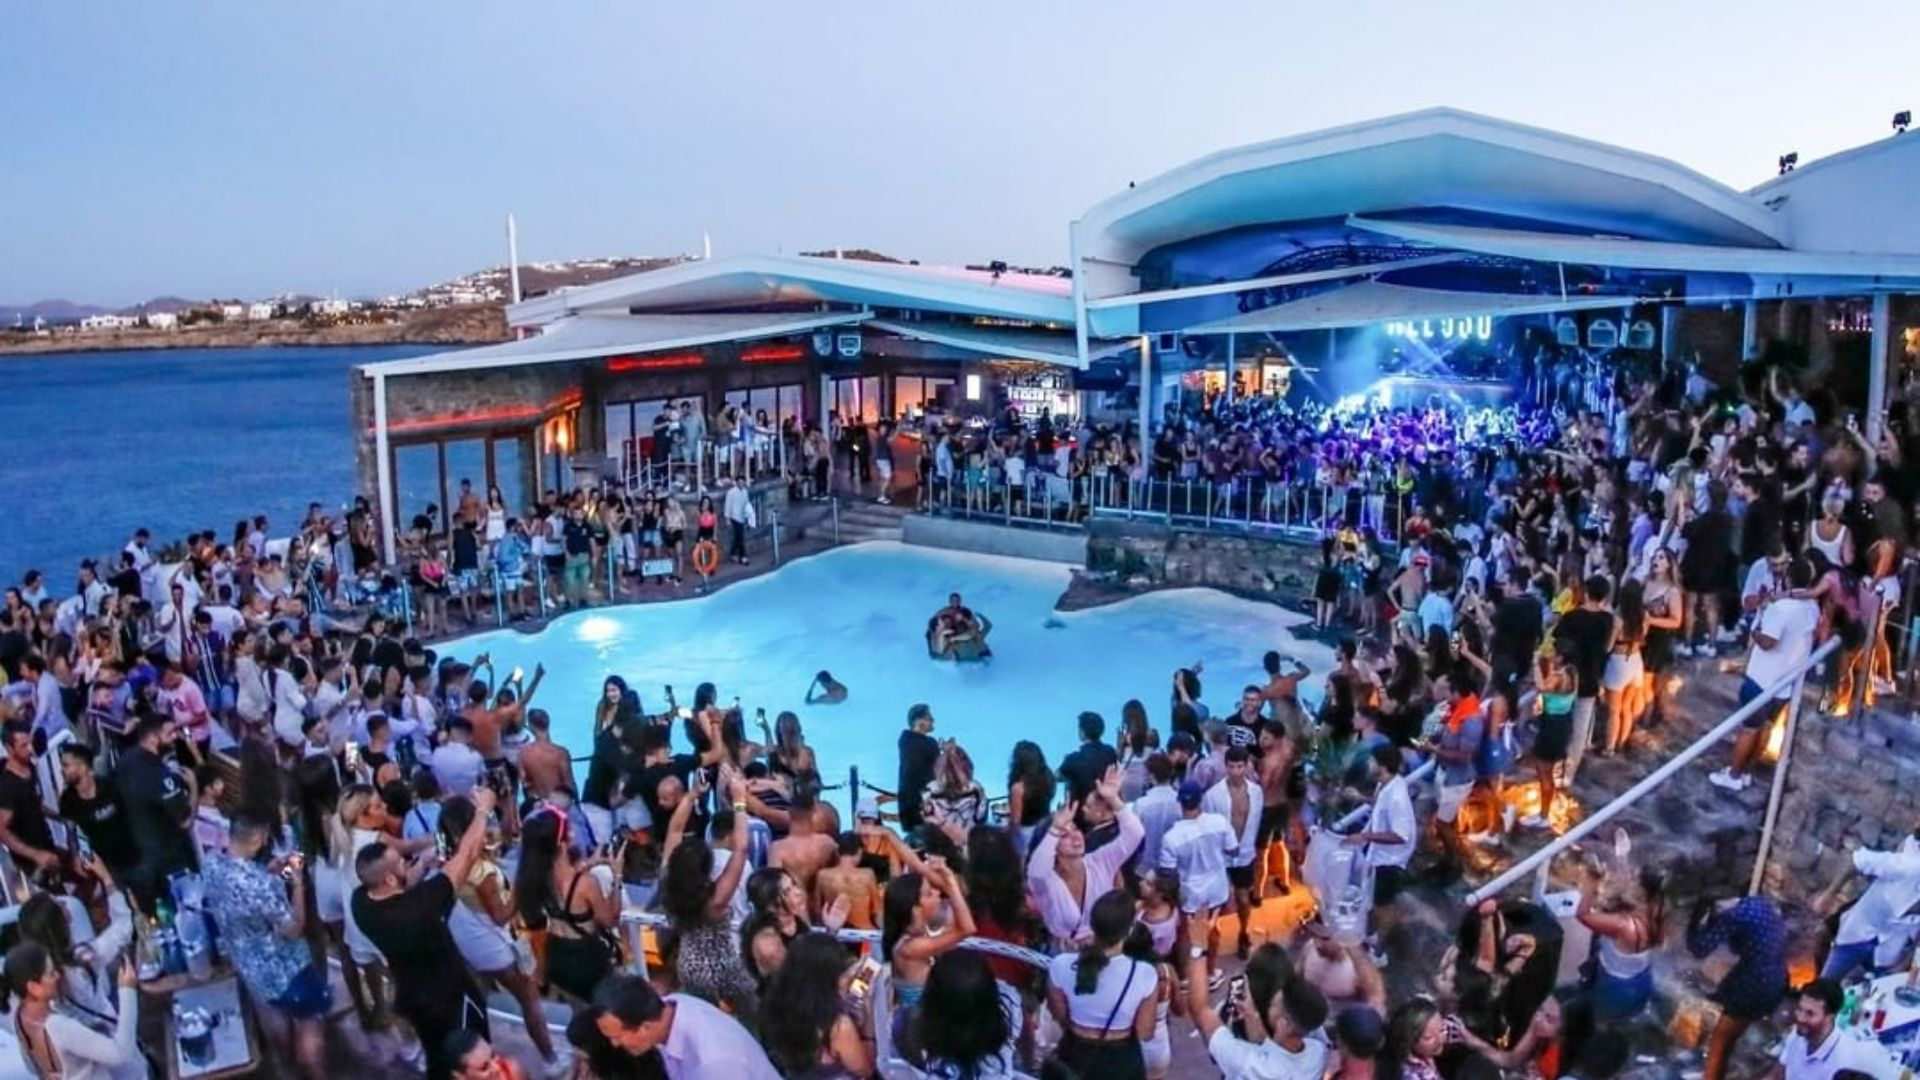 An amazing pool party at Cavo Paradiso